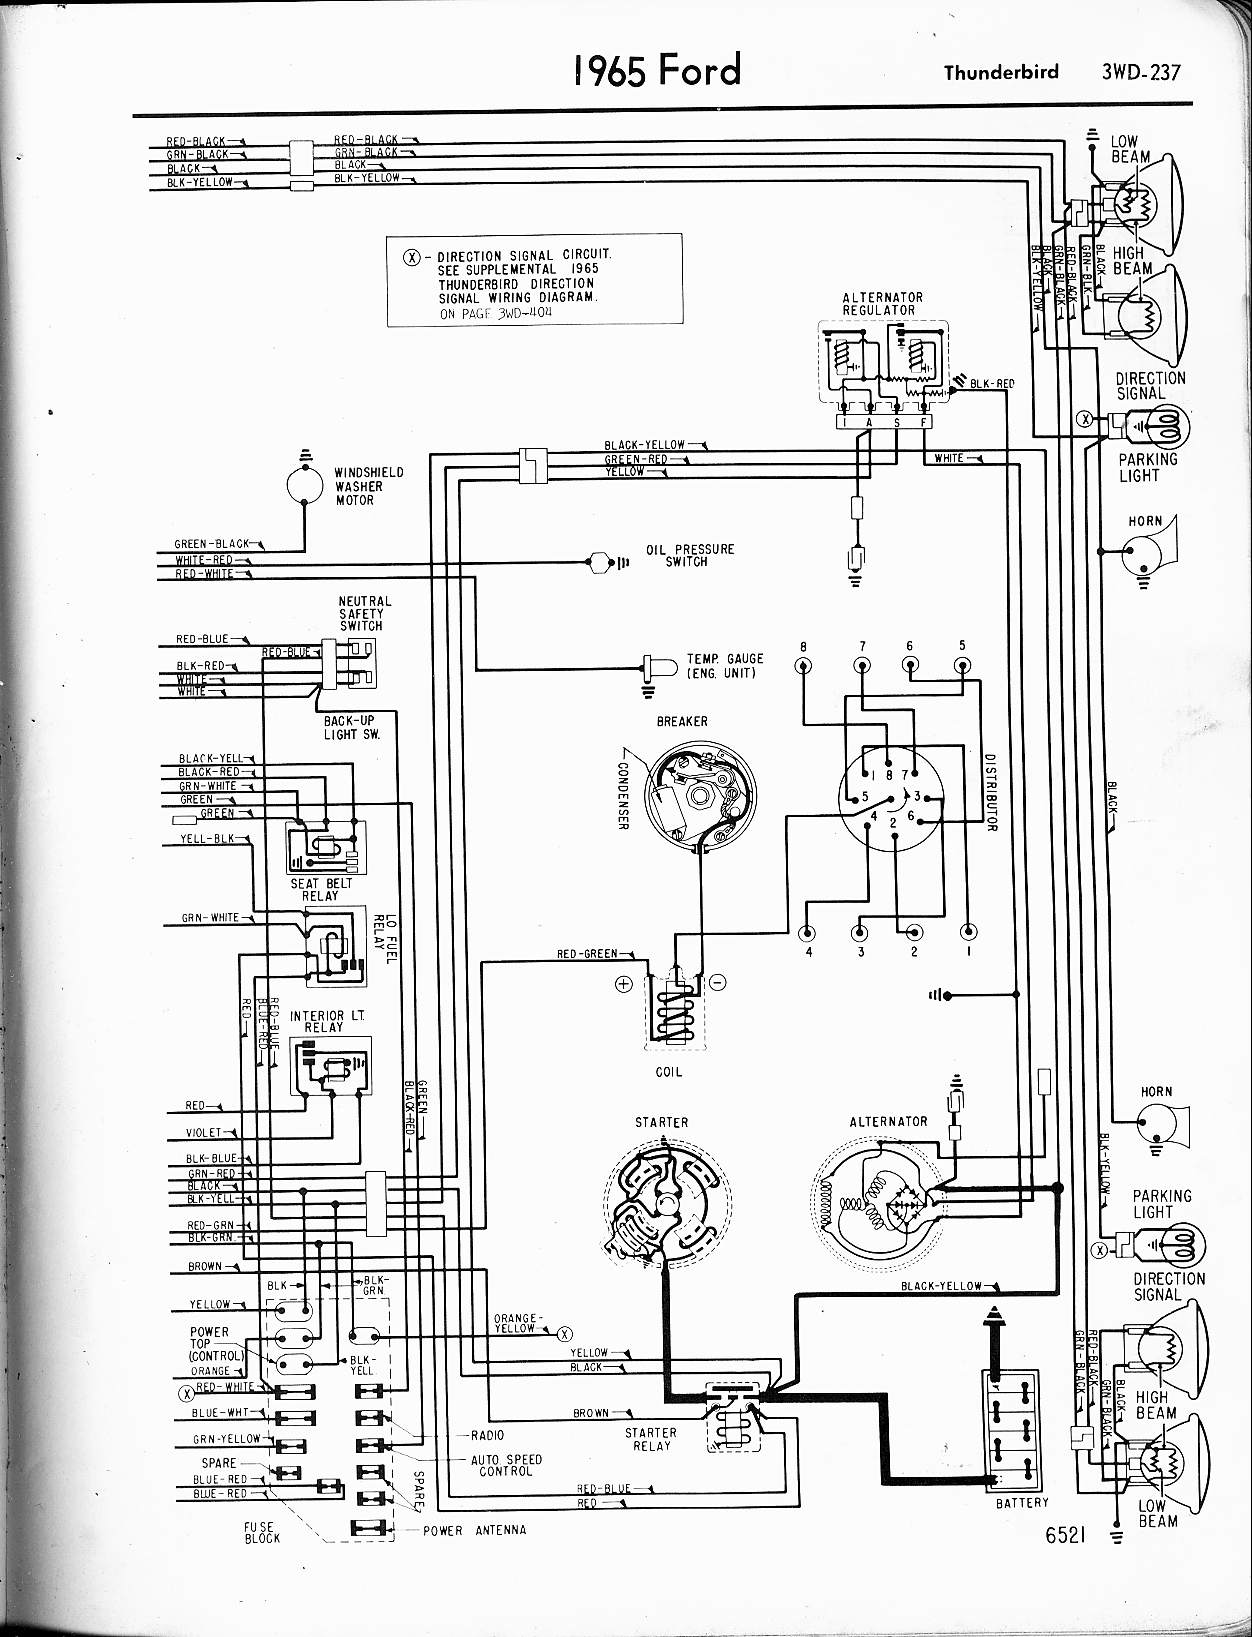 MWire5765 237 1964 thunderbird wiring diagram 1964 thunderbird stereo wiring 65 ford f100 wiring diagram at webbmarketing.co